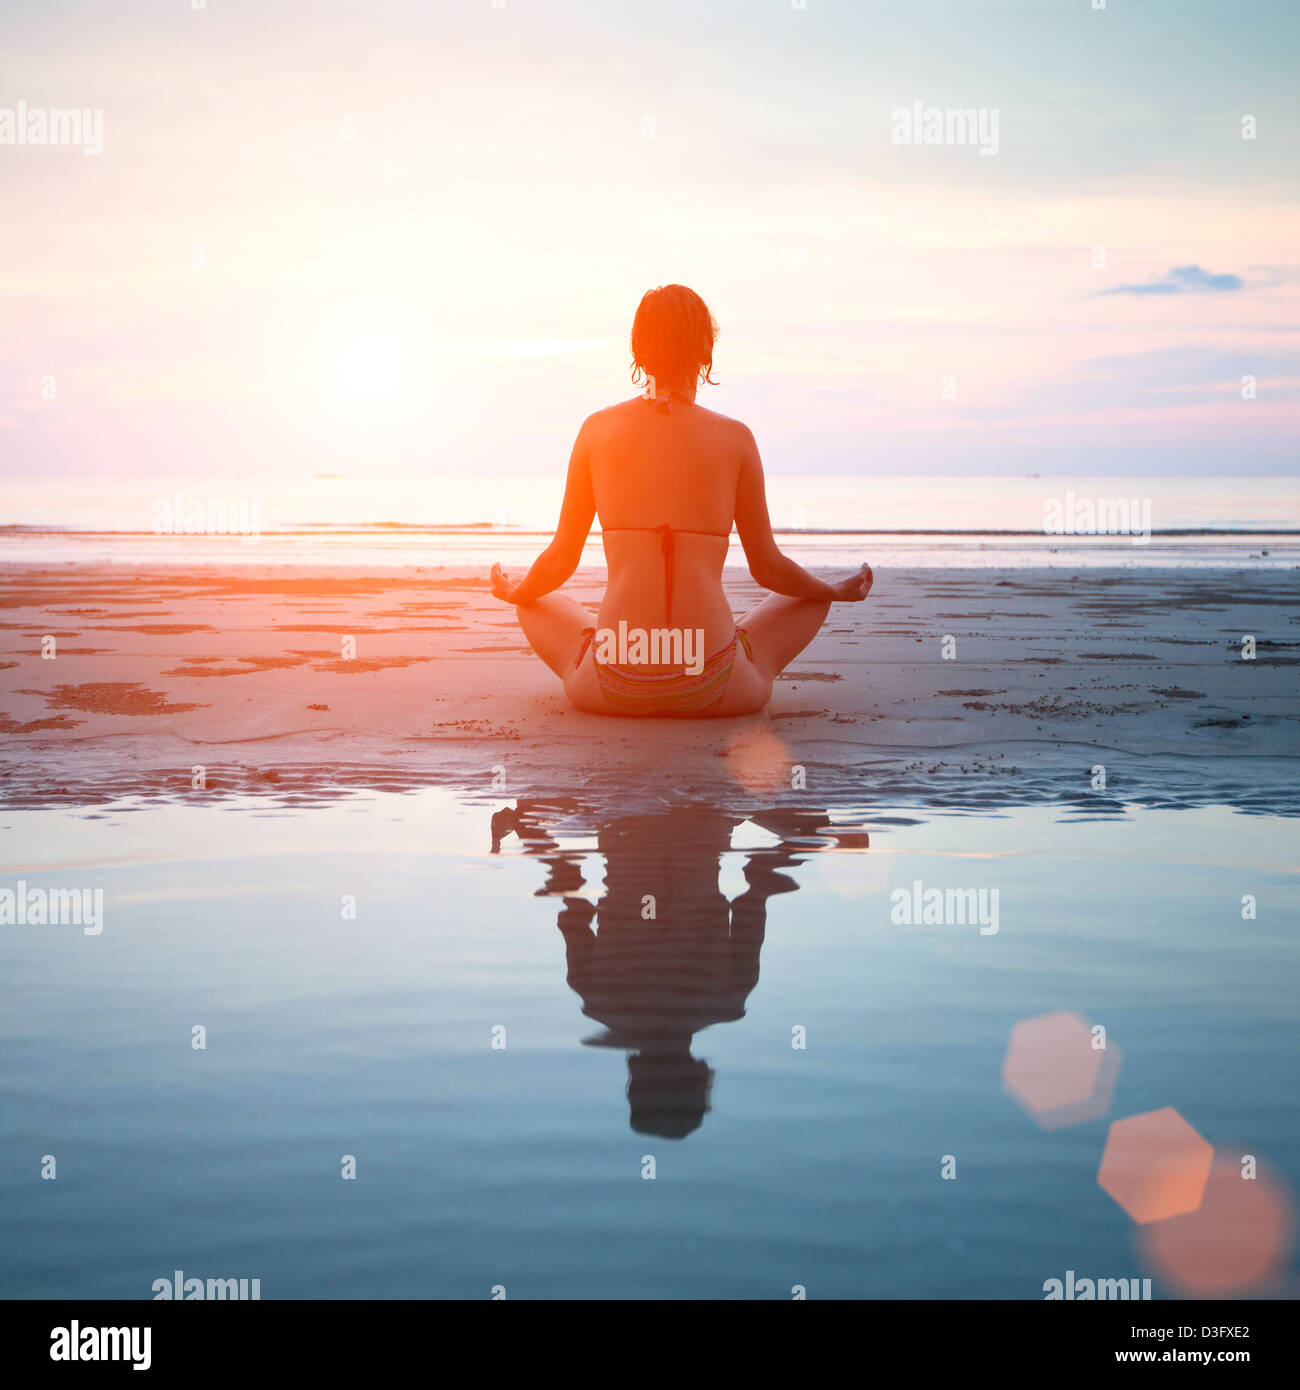 Woman practicing yoga on the beach at sunset, with reflection in water. - Stock Image